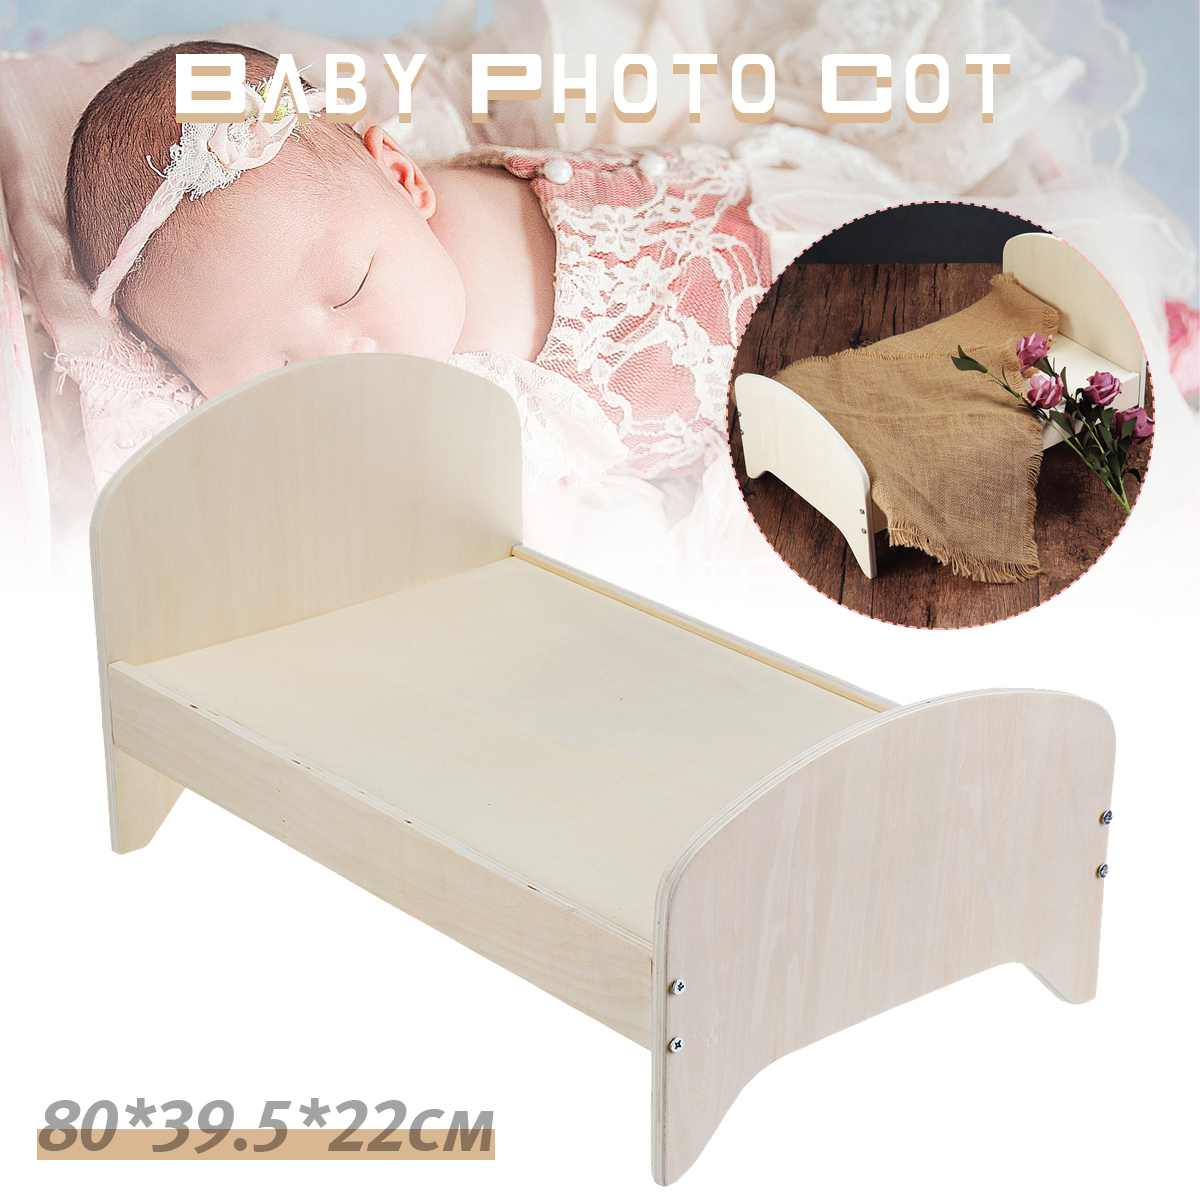 Detachable Wooden Crib Basket Wooden Bed Sofa Photo Shooting Baby Posing Gift Photography Background Photography Studio Props